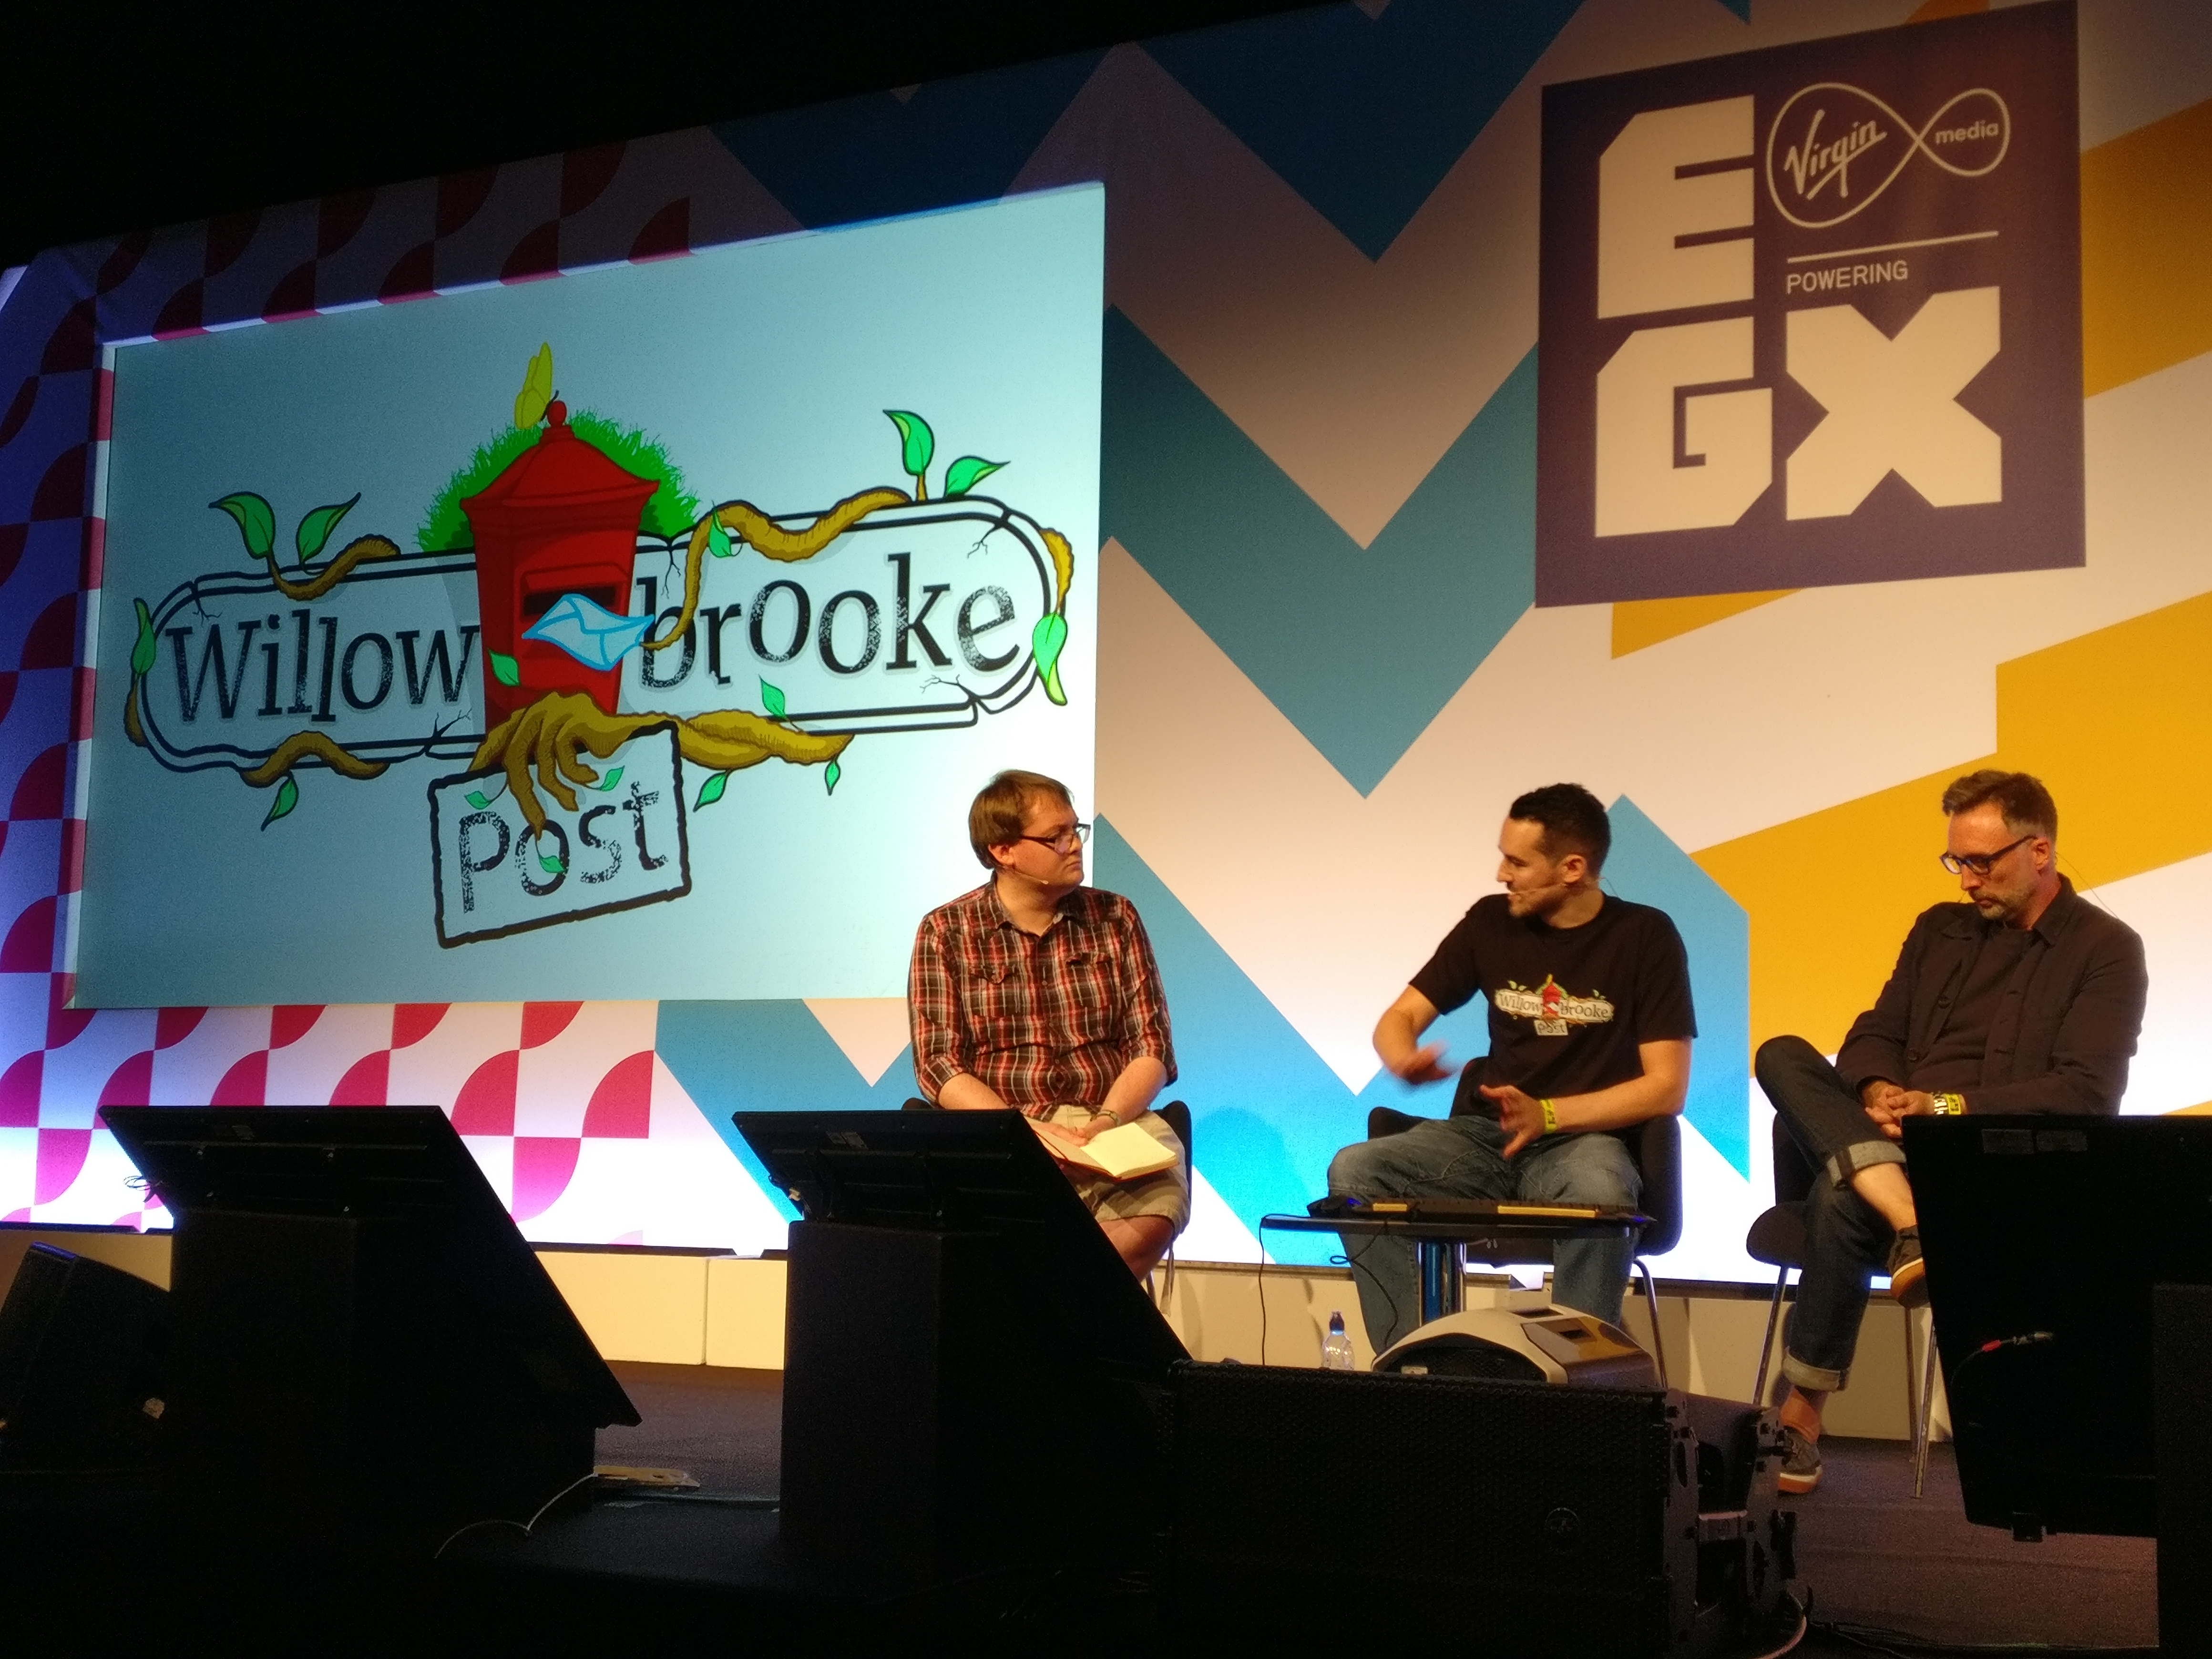 Willowbrooke Post announced at EGX: 'Animal Crossing meets Papers, Please!'